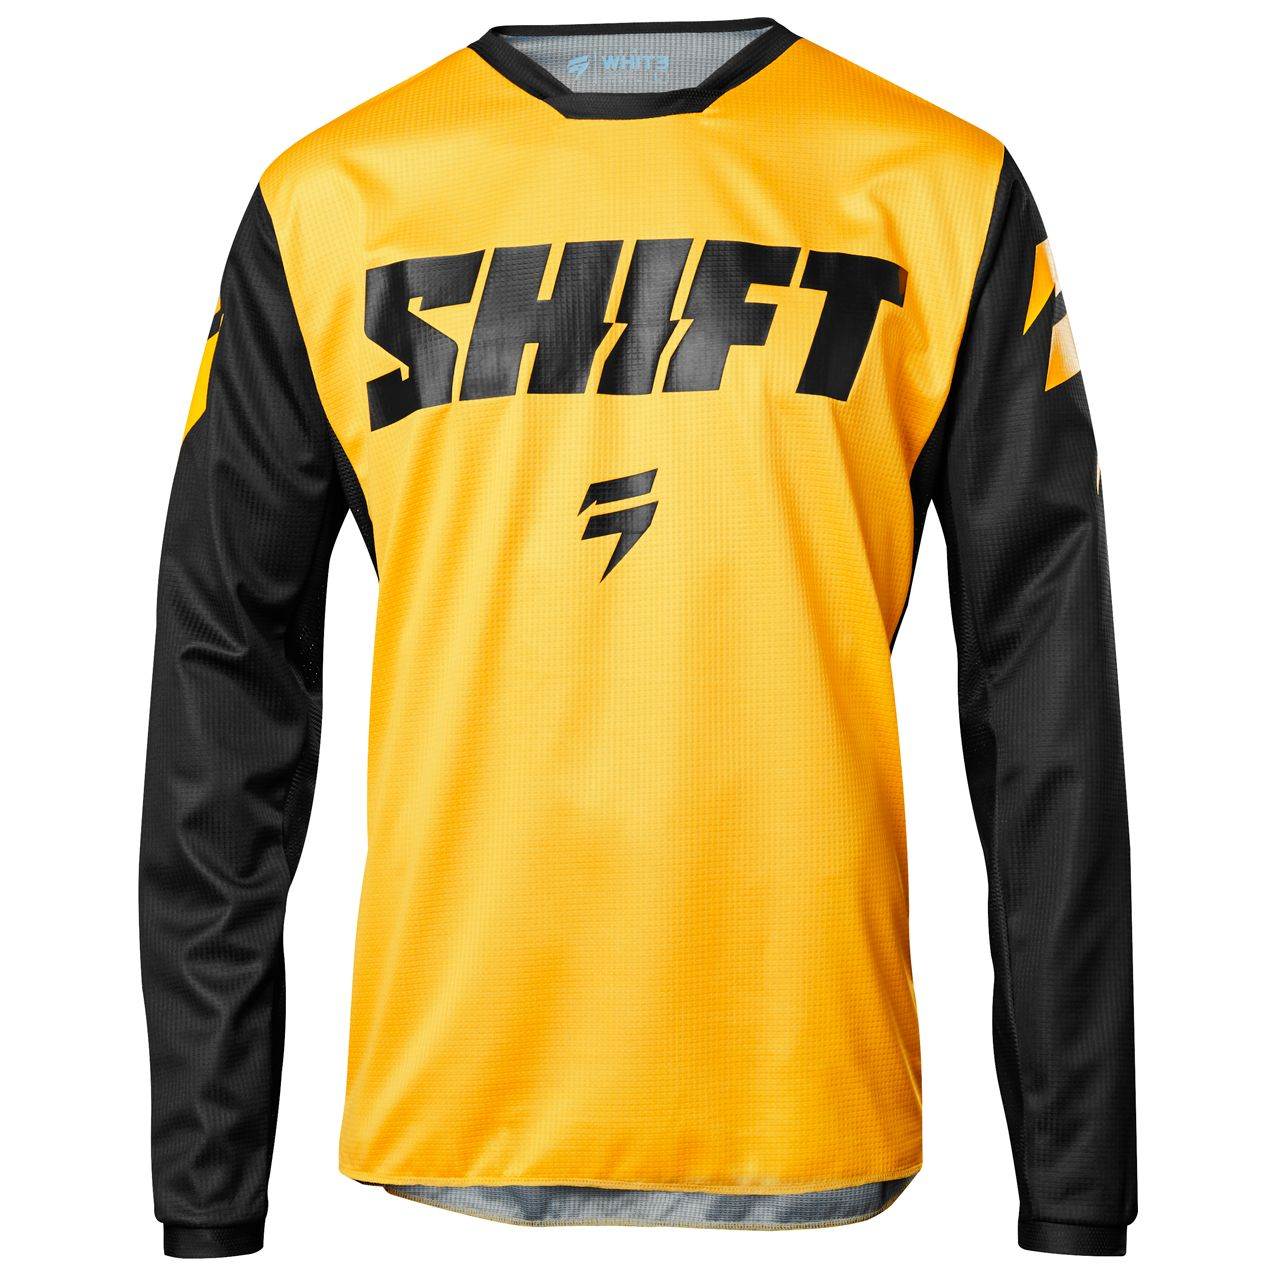 Maillot cross Shift WHIT3 LABEL NINETY SEVEN jaune youth 2018